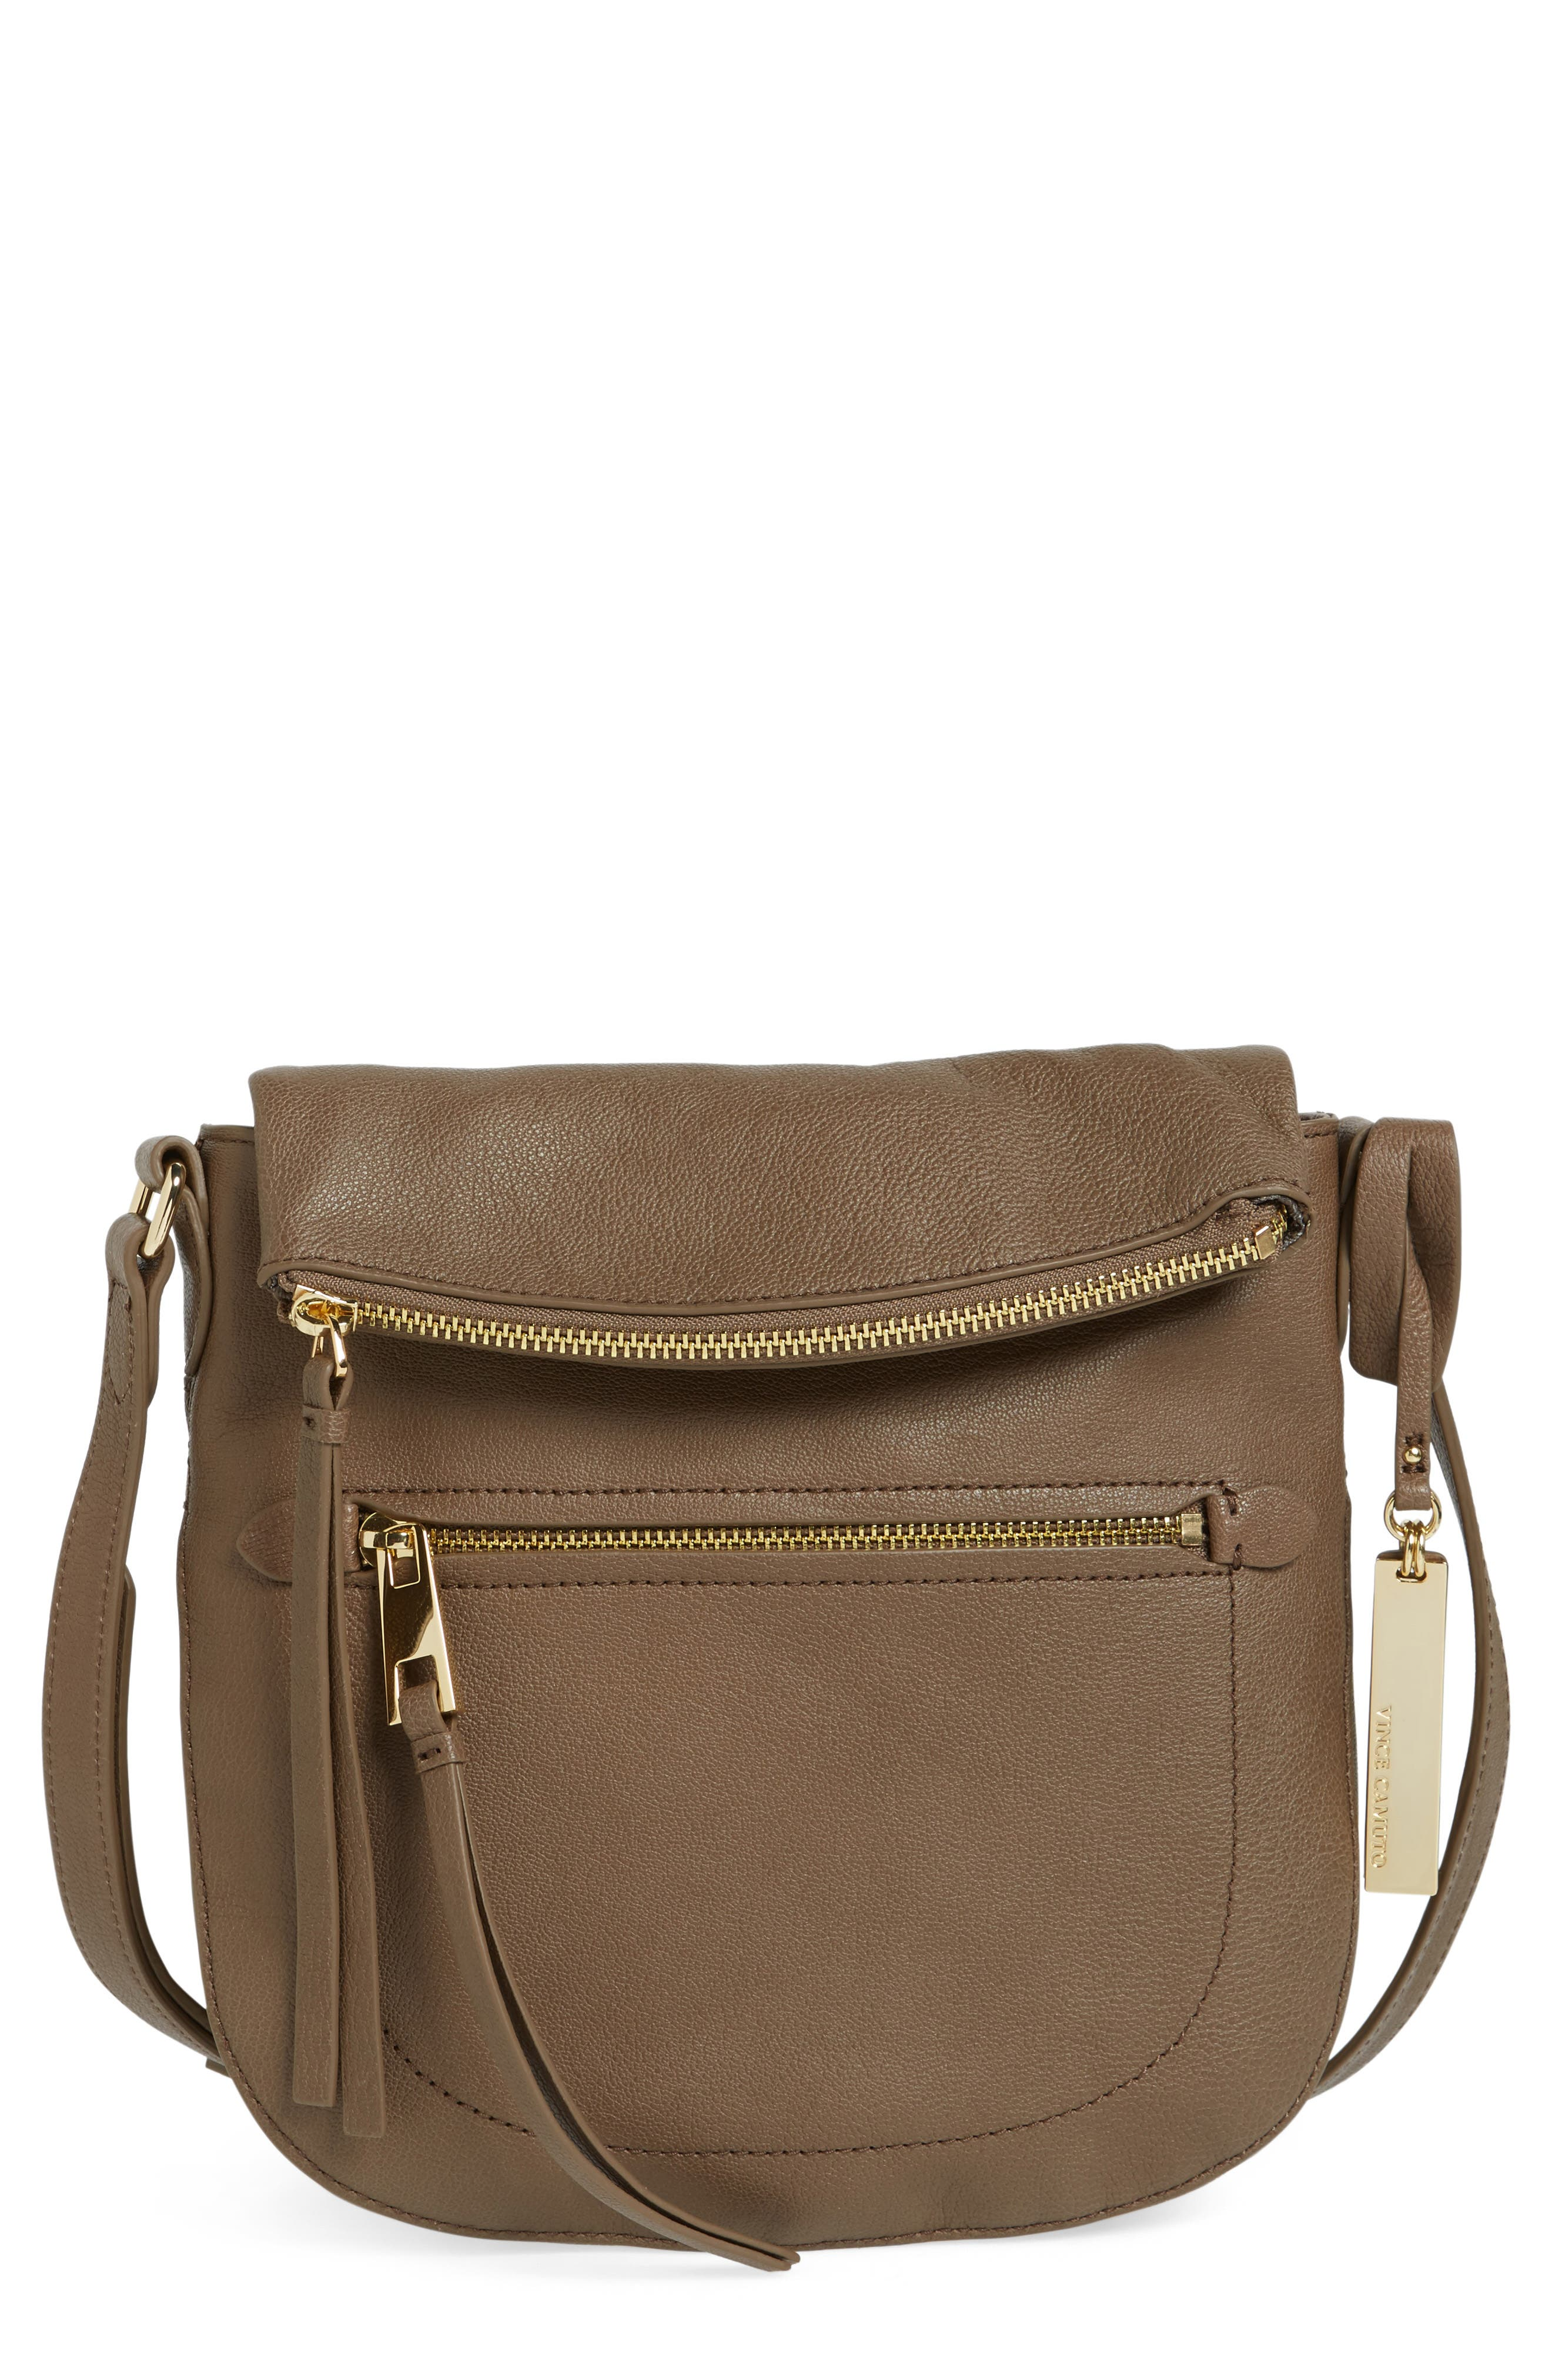 Main Image - Vince Camuto 'Tala' Leather Crossbody Bag (Nordstrom Exclusive)